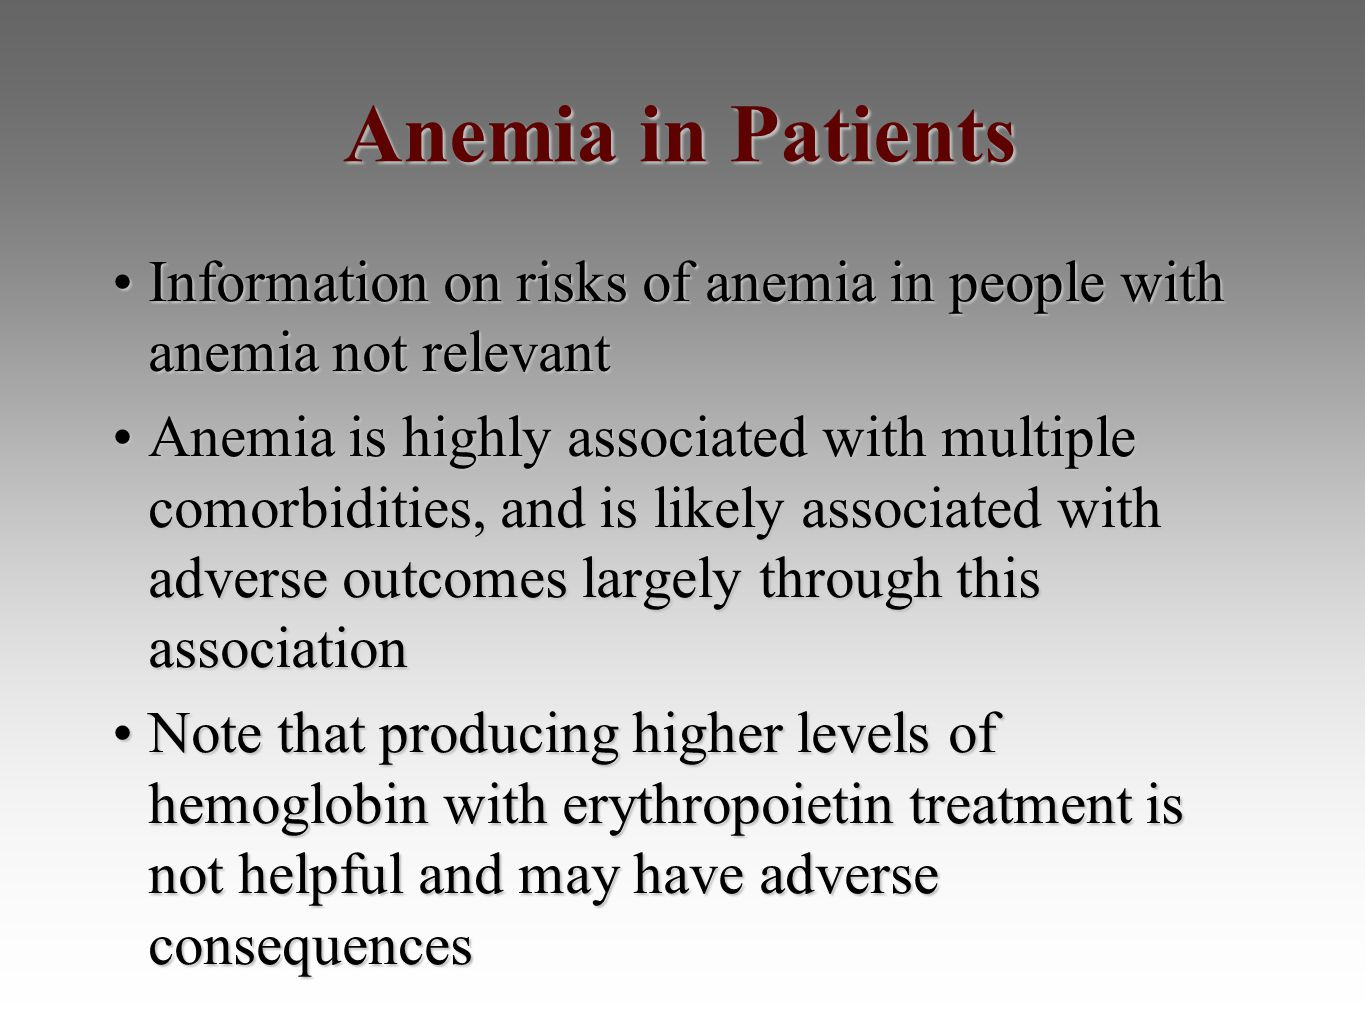 Anemia in Patients Information on risks of anemia in people with anemia not relevantInformation on risks of anemia in people with anemia not relevant Anemia is highly associated with multiple comorbidities, and is likely associated with adverse outcomes largely through this associationAnemia is highly associated with multiple comorbidities, and is likely associated with adverse outcomes largely through this association Note that producing higher levels of hemoglobin with erythropoietin treatment is not helpful and may have adverse consequencesNote that producing higher levels of hemoglobin with erythropoietin treatment is not helpful and may have adverse consequences